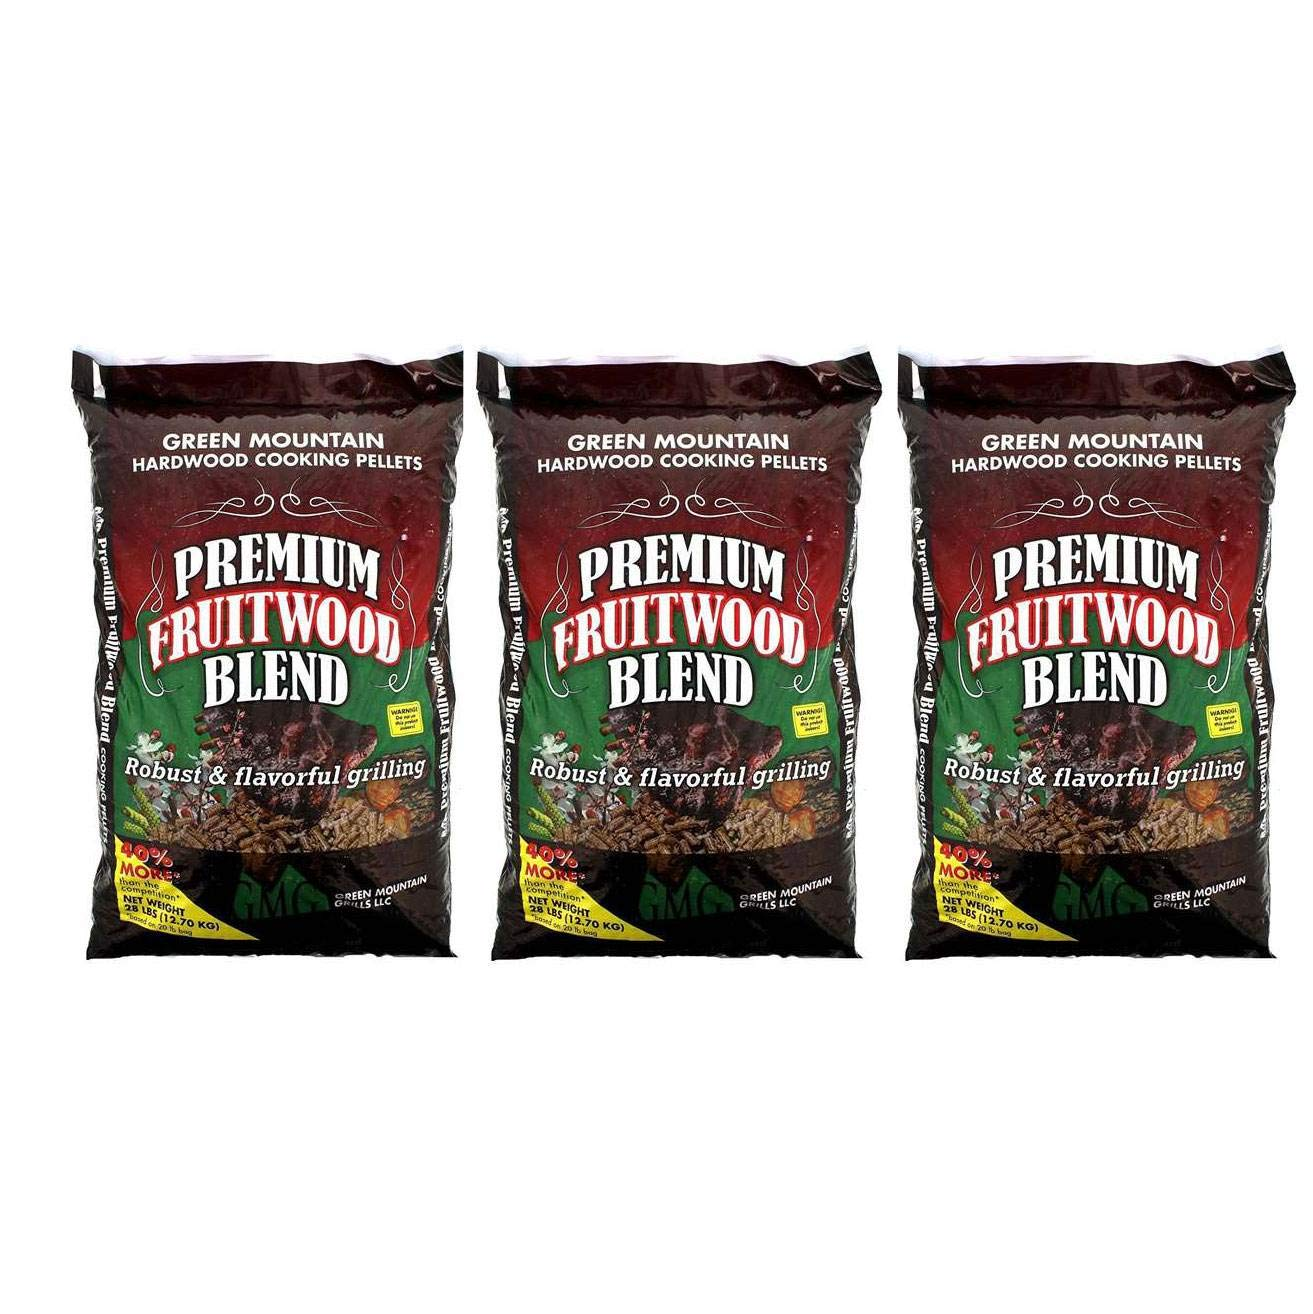 Green Mountain Grills Premium Fruitwood Pure Hardwood Grilling Pellets (3 Pack) by Green Mountain Grills